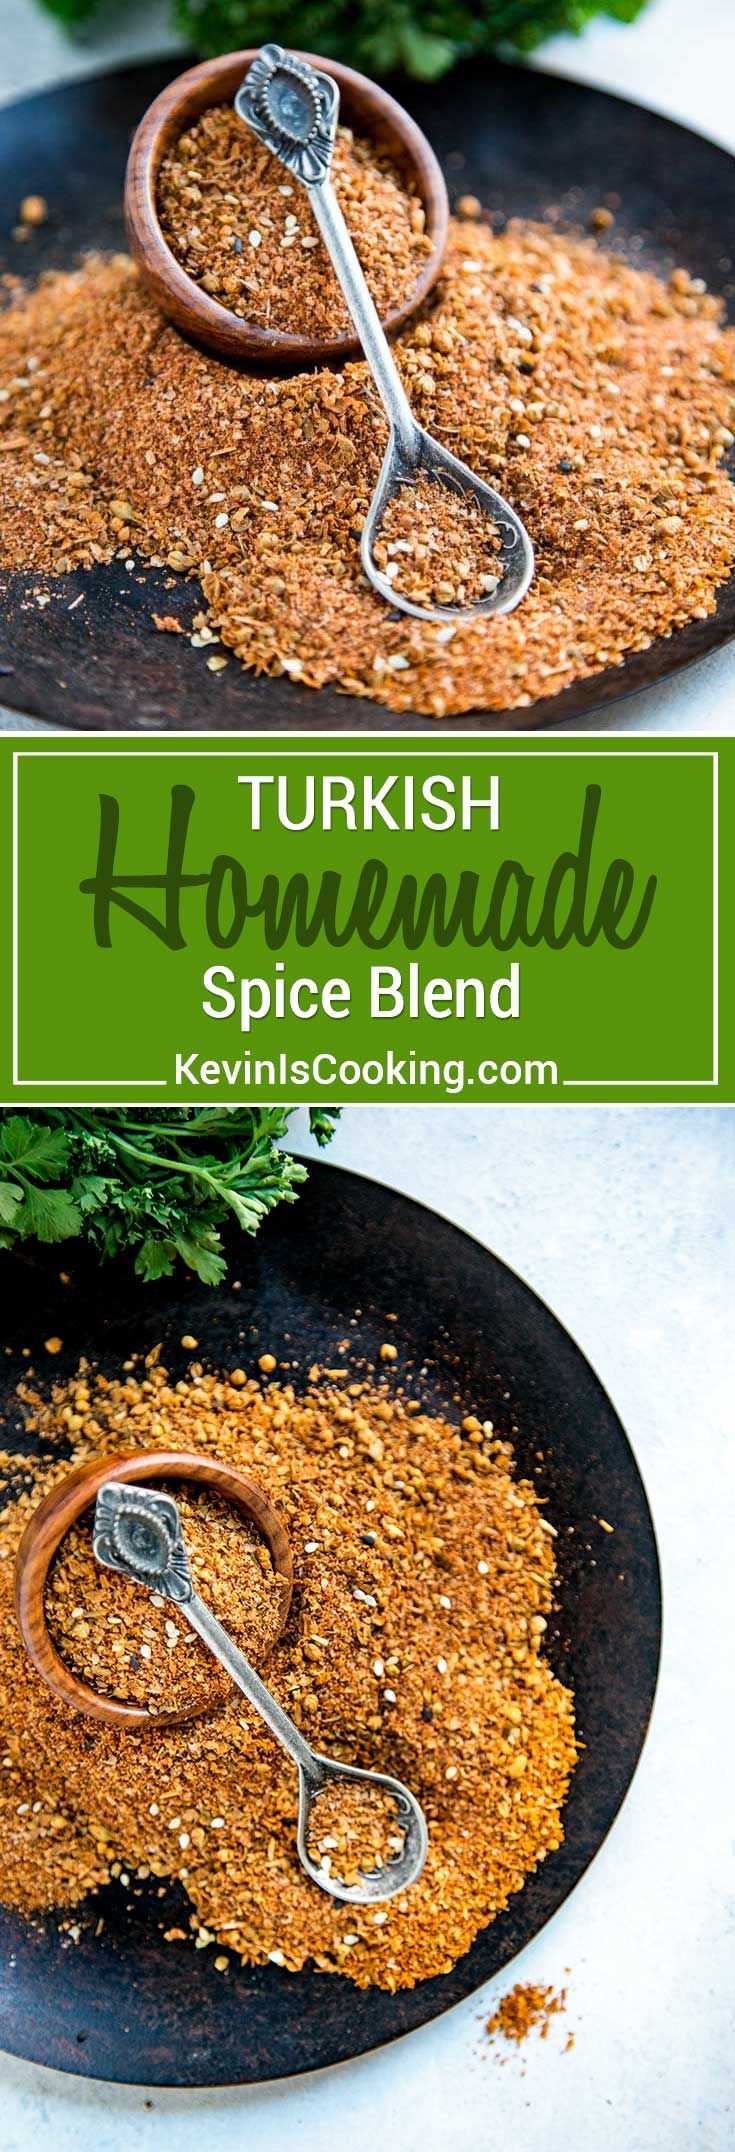 This Turkish Spice Blend isa warm and earthy seasoning rich with cumin, pepper, paprika and Middle Eastern spices and sesame seeds. Perfect on roasted meats, as a dry rub and seasoning. via @keviniscooking